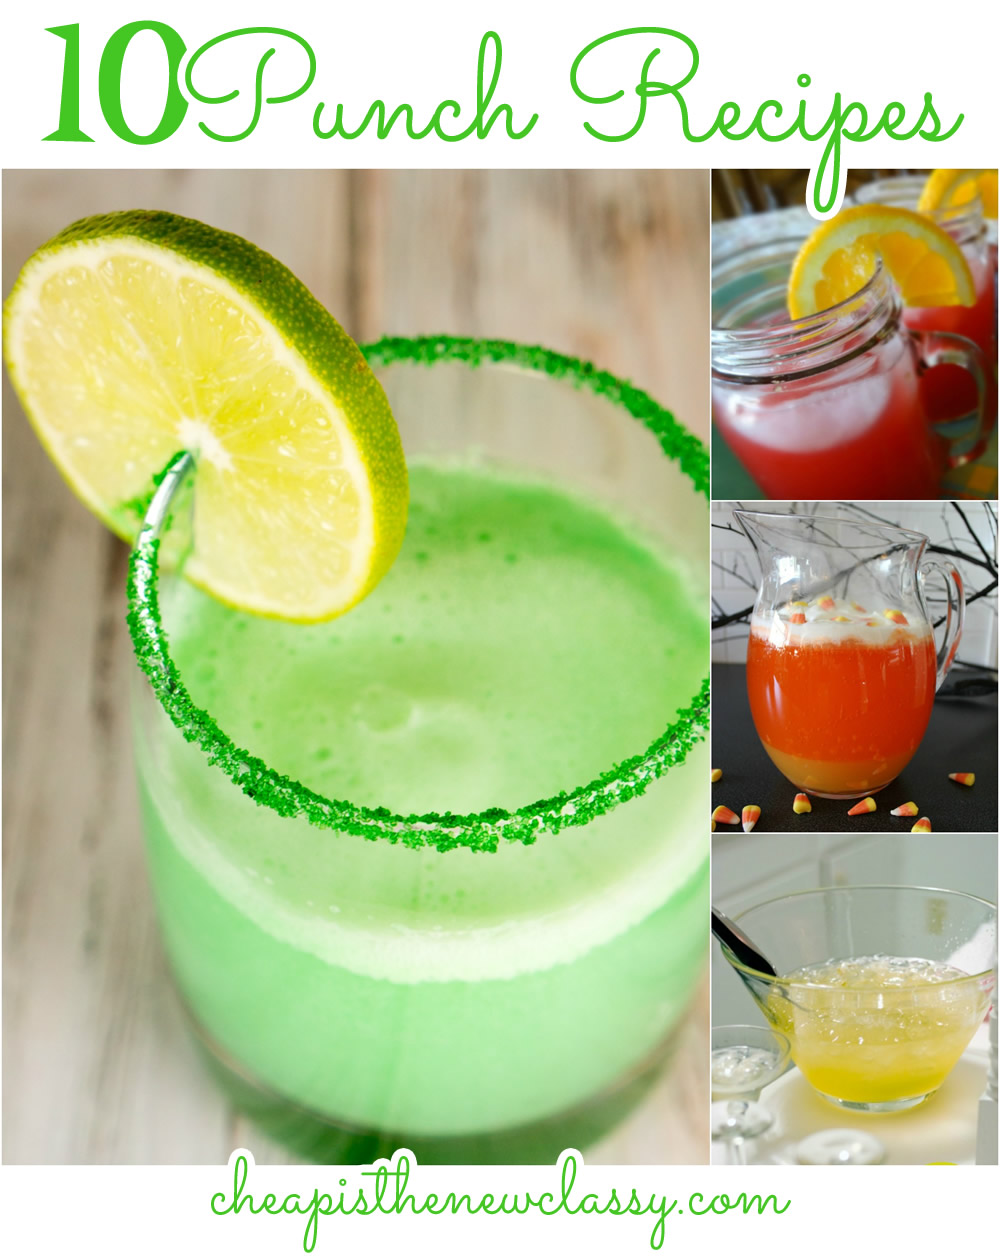 10 Tasty Punch Recipes To Celebrate National Punch Day | Cheap Is The New Classy